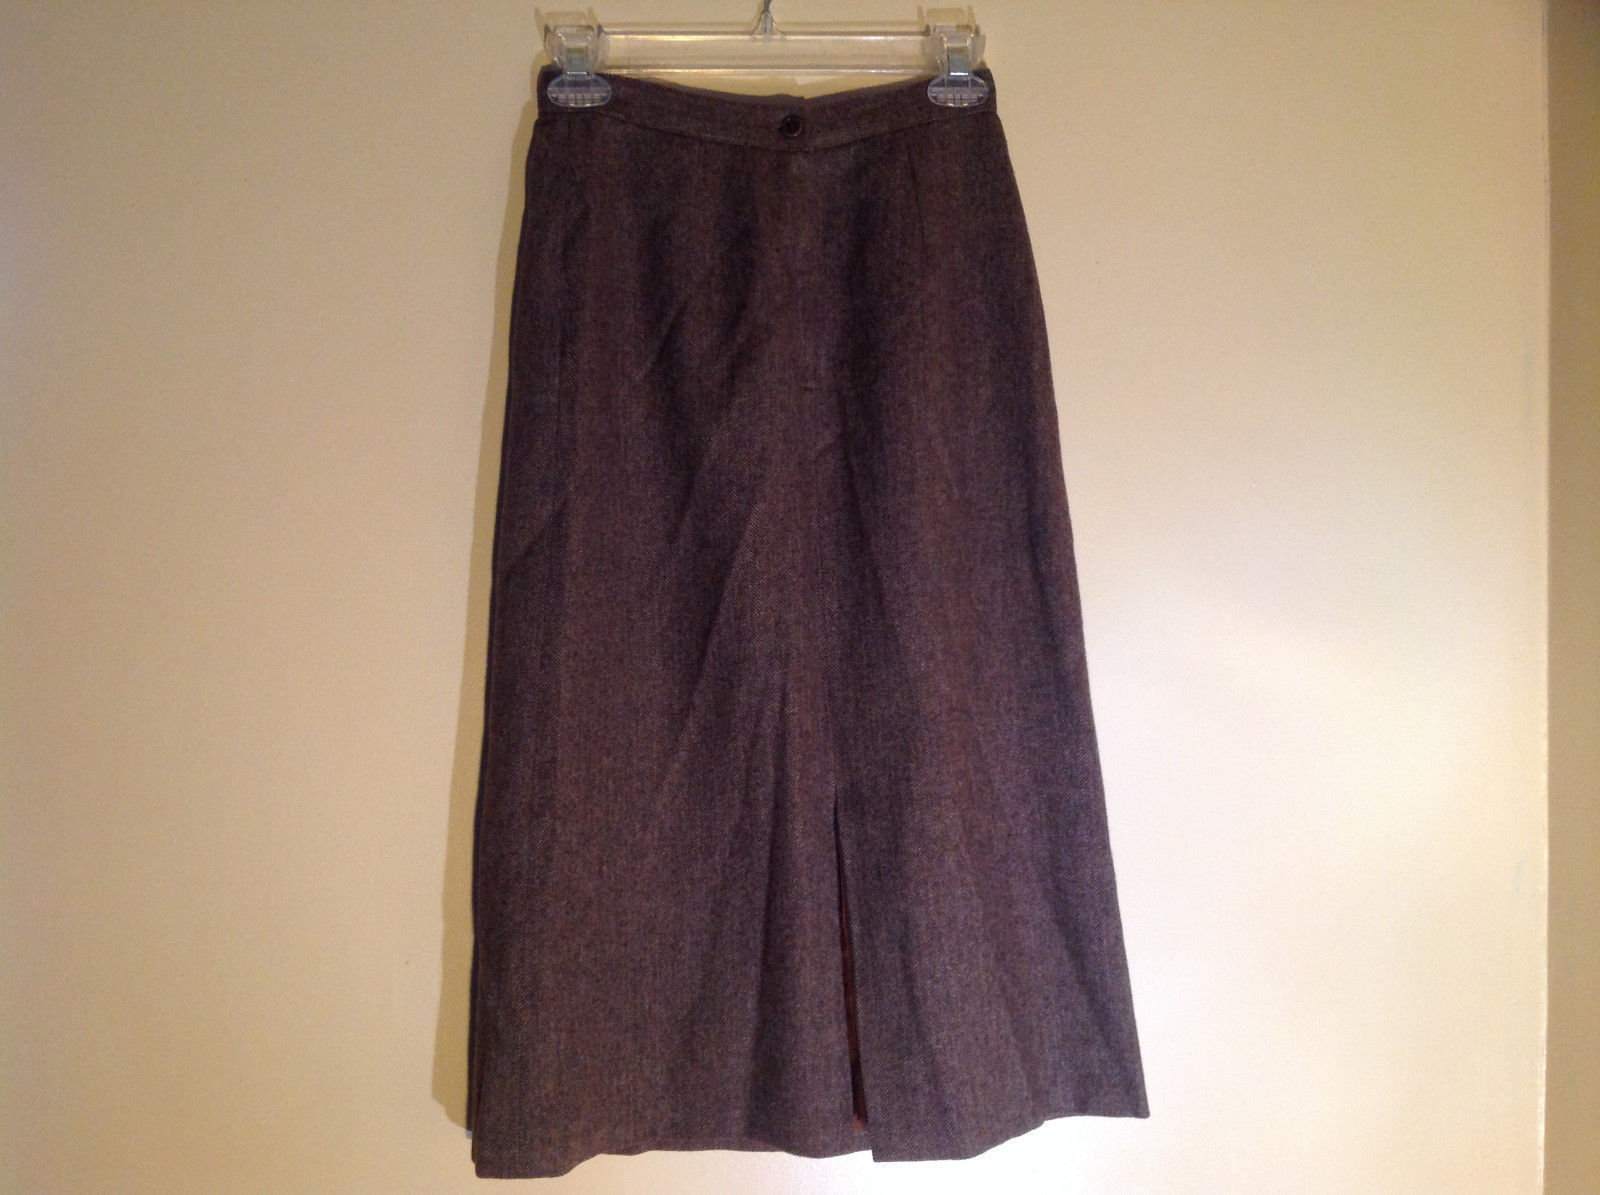 Brown Herringbone Calf Length Skirt Zipper and Button Closure Pockets Size 5-6